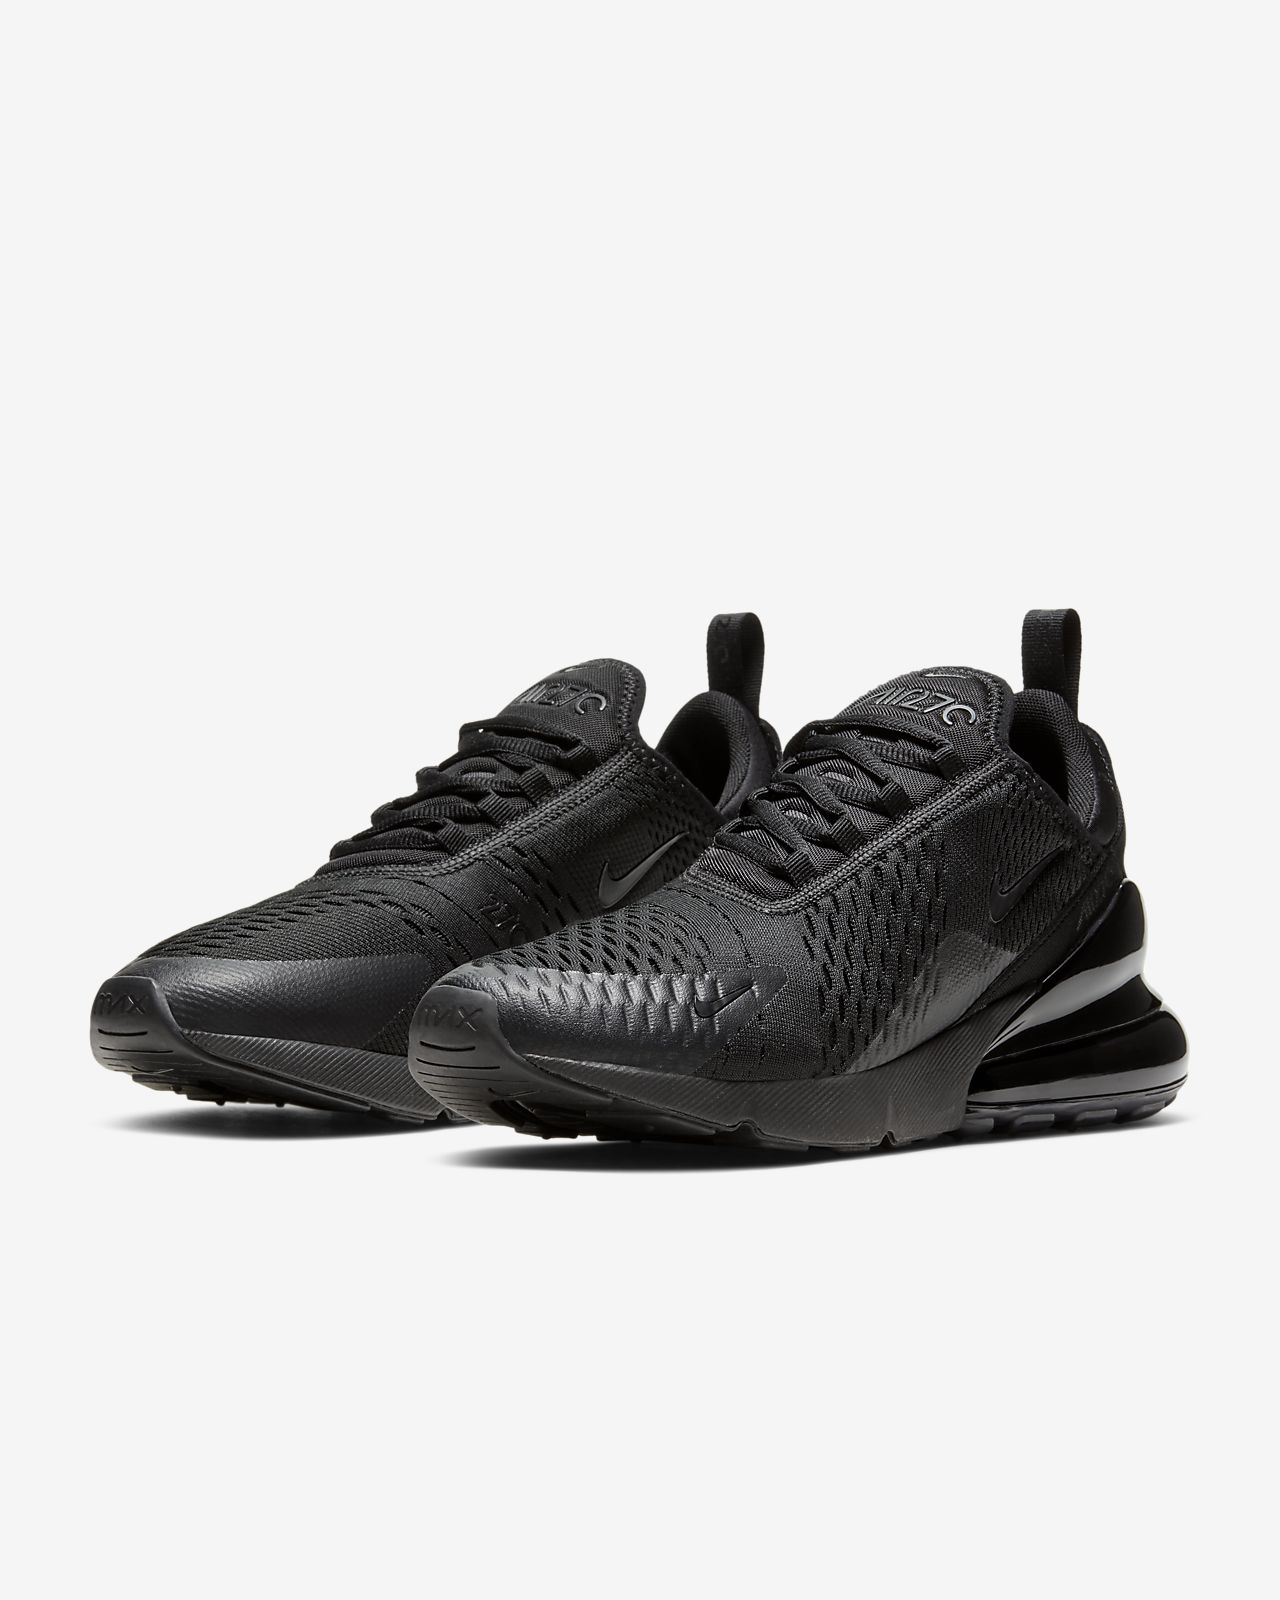 reputable site 7b258 66db9 ... Nike Air Max 270 Mens Shoe